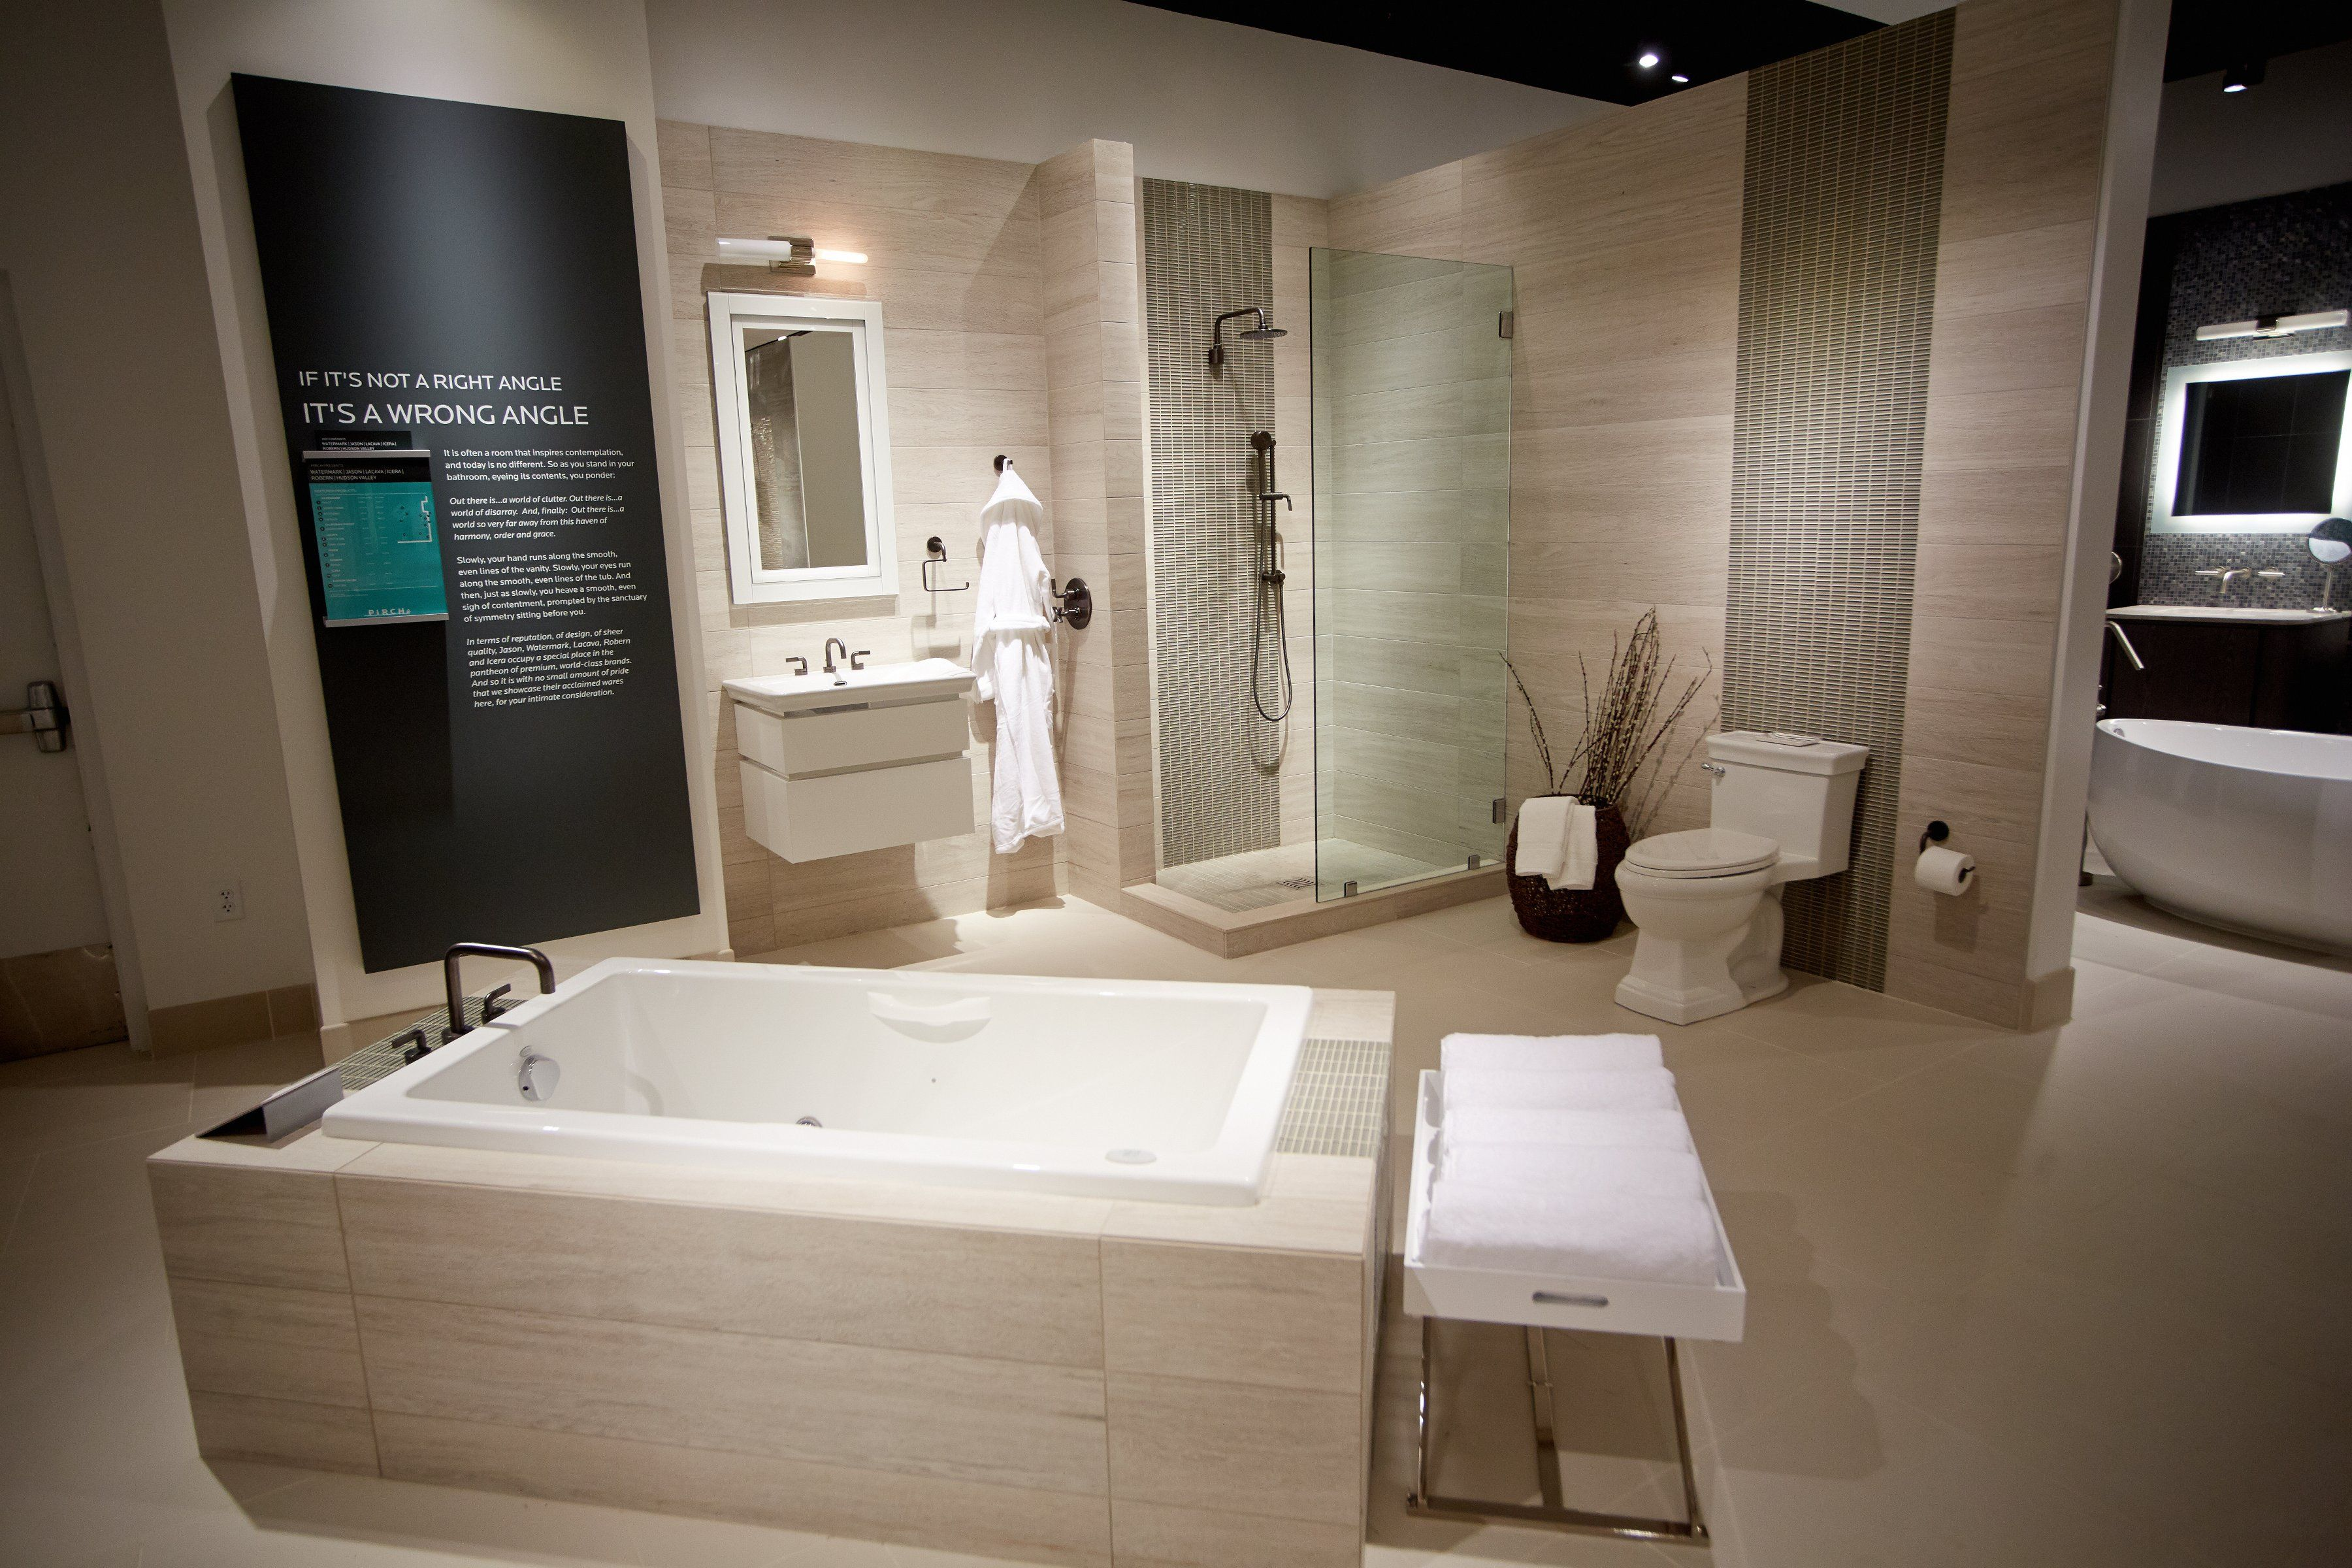 Bathroom Design Bathtubs PIRCH UTC BathtubsShowroomMaster BathSan Diego  Bathroom  Design Bathtubs PIRCH UTC PIRCH San. Bathroom Designer San Diego   NurseryInstyle com